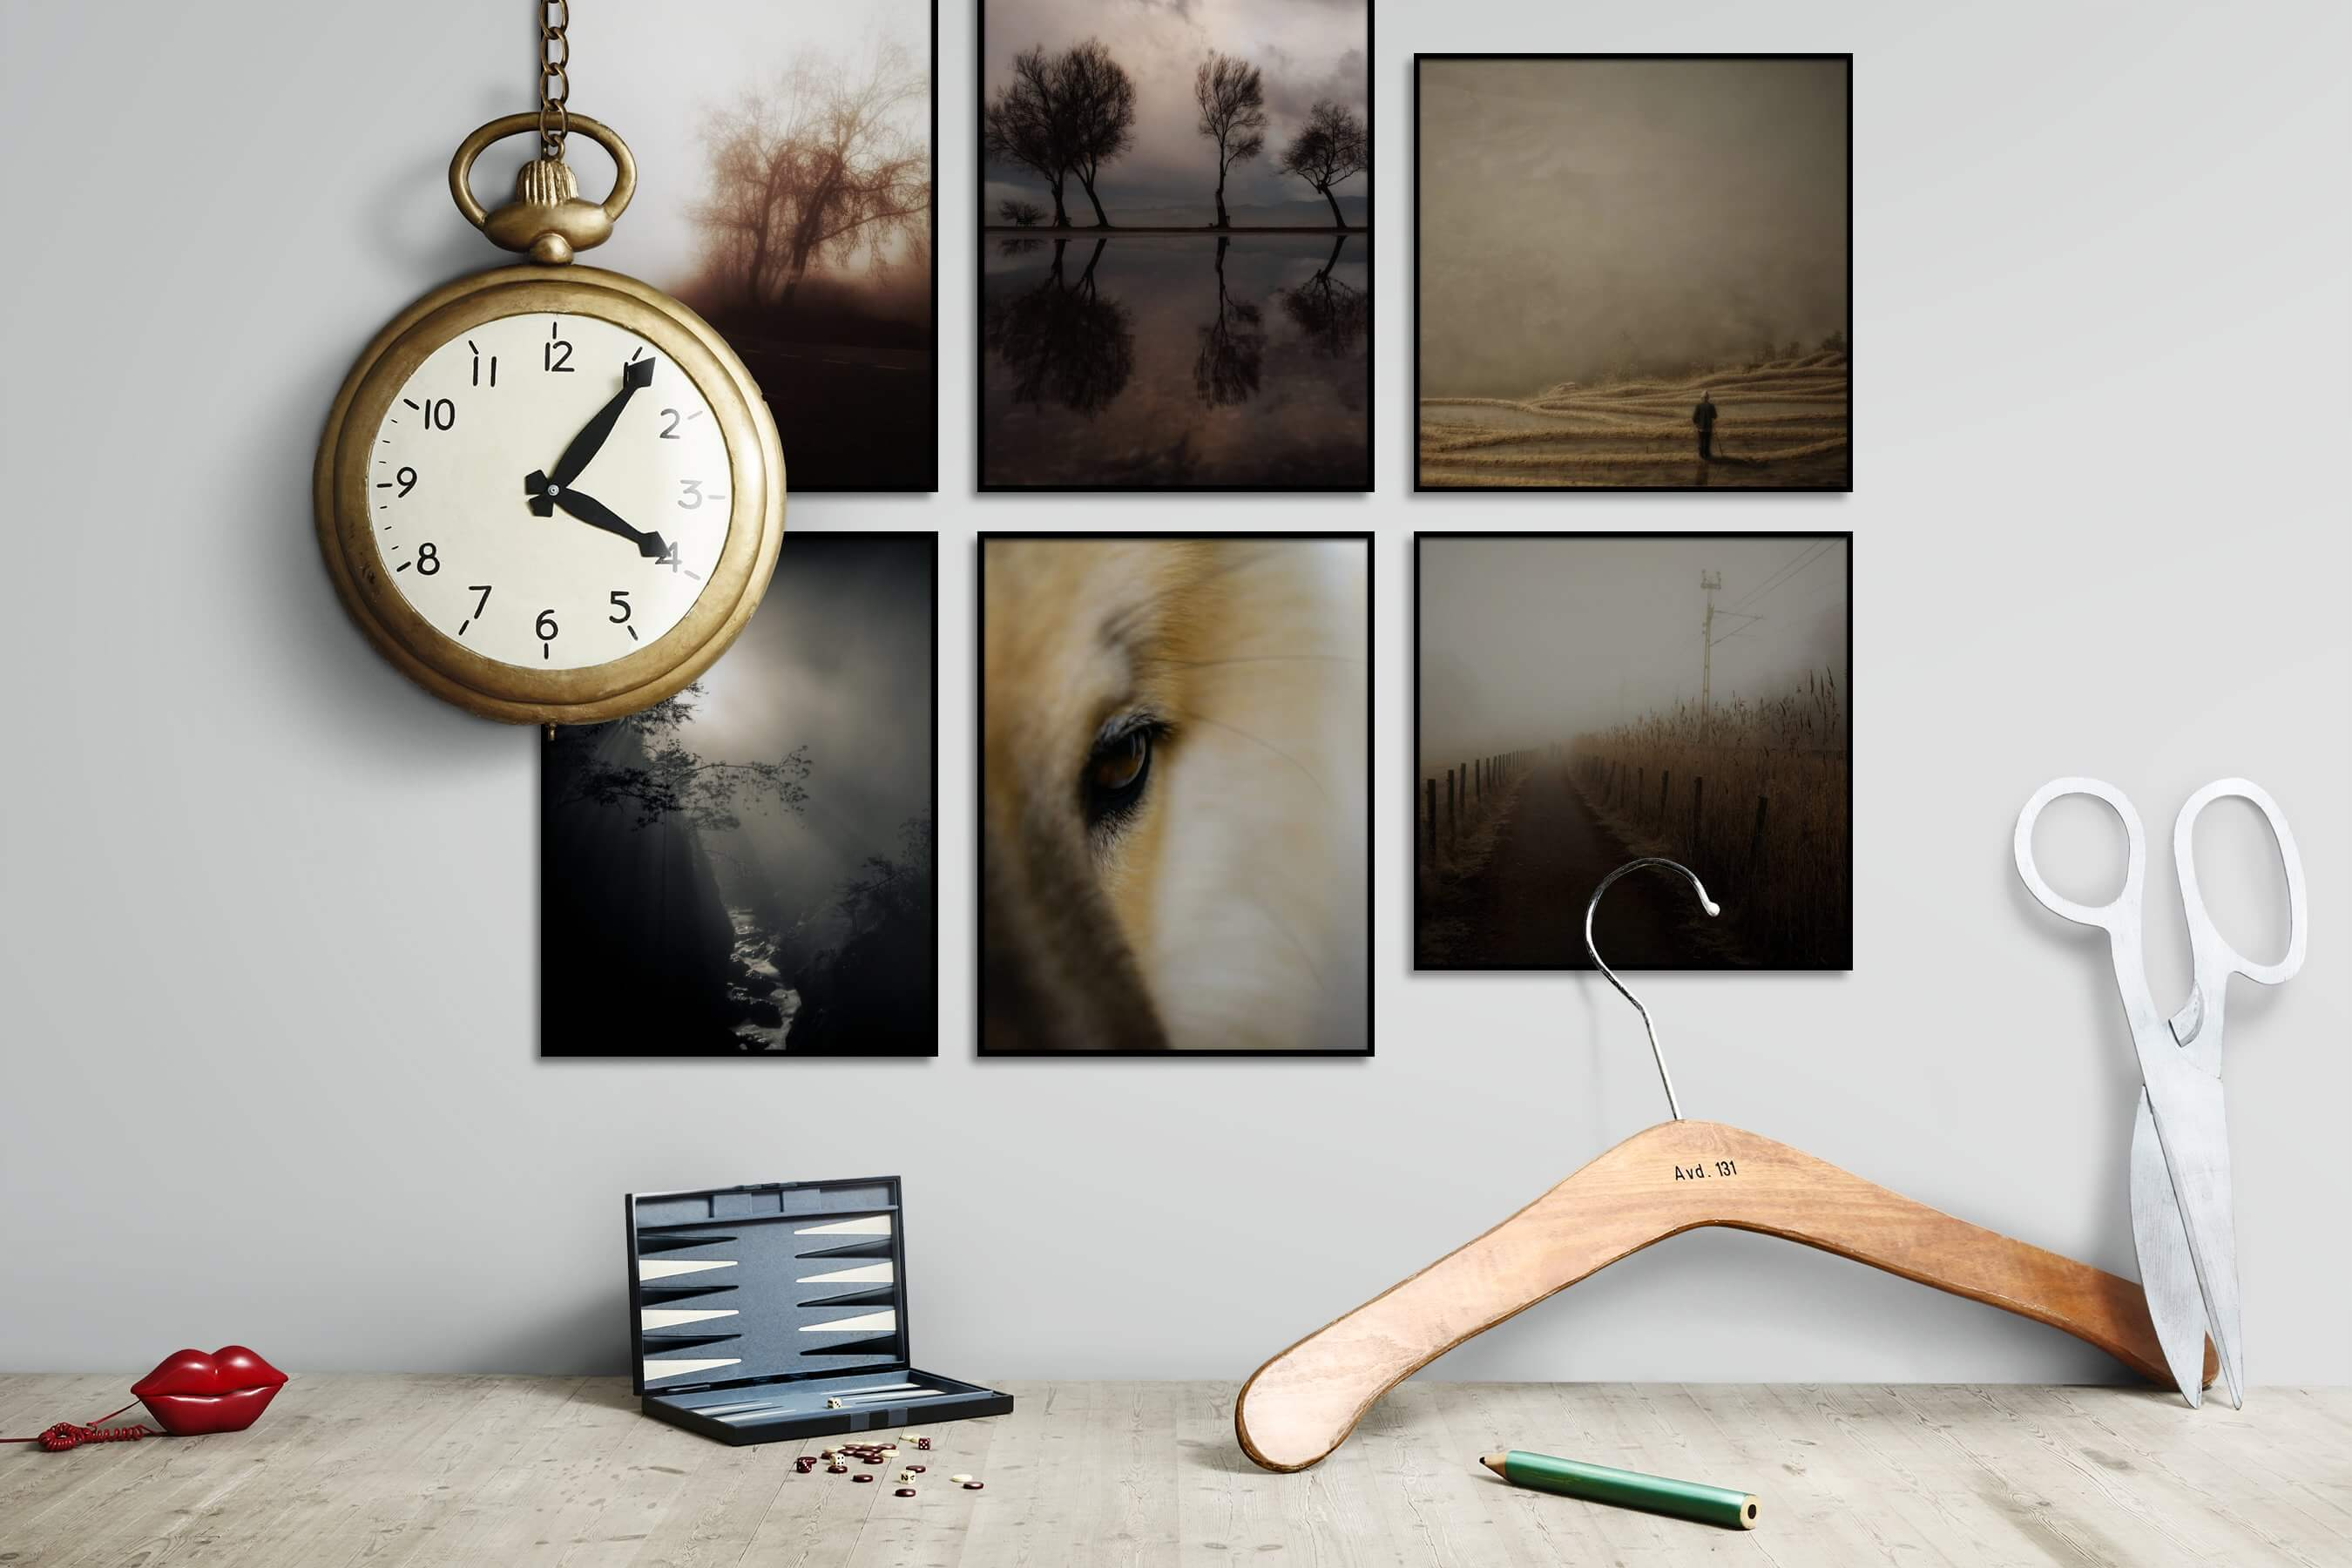 Gallery wall idea with six framed pictures arranged on a wall depicting Country Life, Nature, Black & White, and Animals